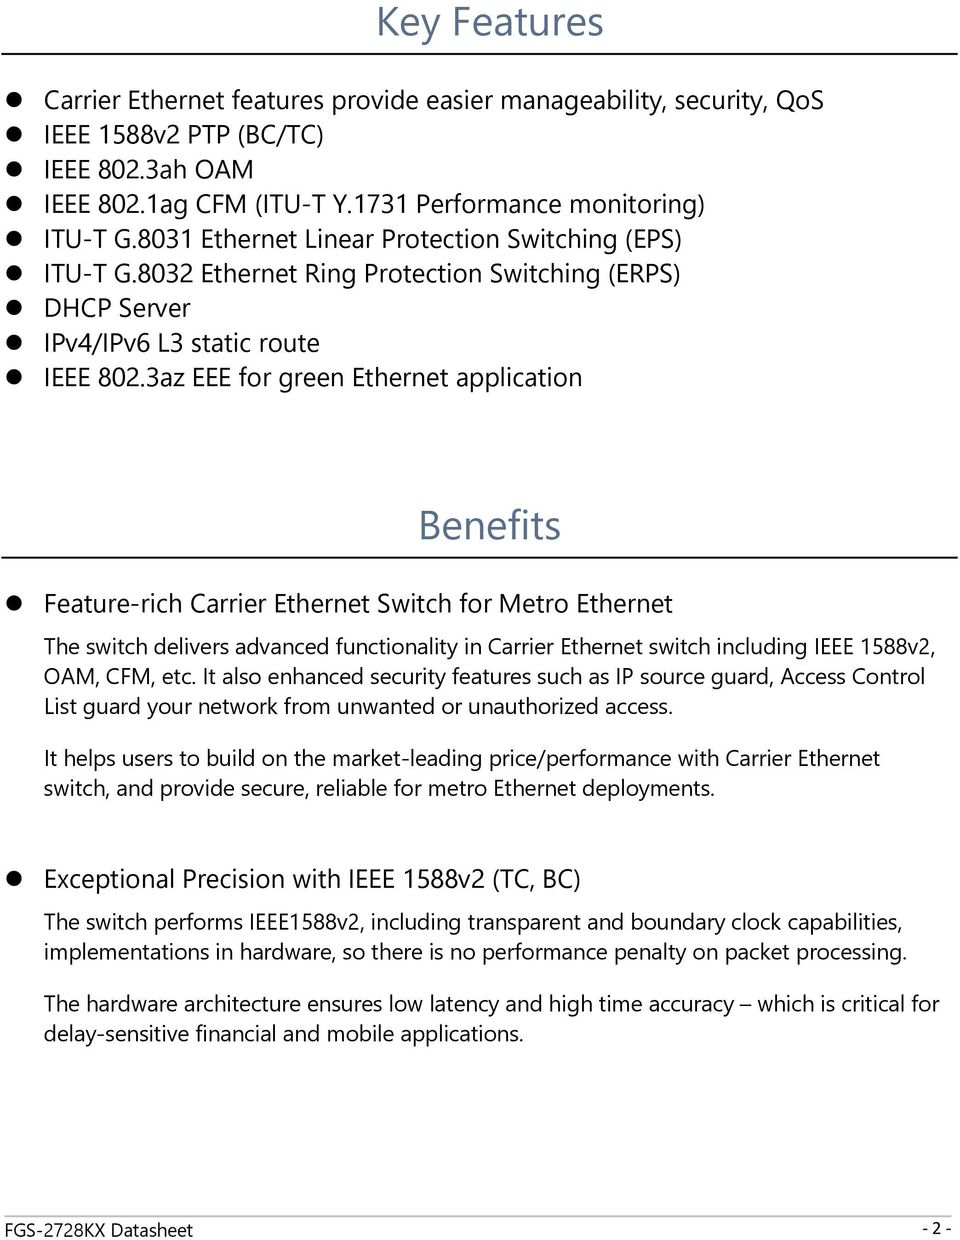 3az EEE for green Ethernet application Benefits Feature-rich Carrier Ethernet Switch for Metro Ethernet The switch delivers advanced functionality in Carrier Ethernet switch including IEEE 1588v2,